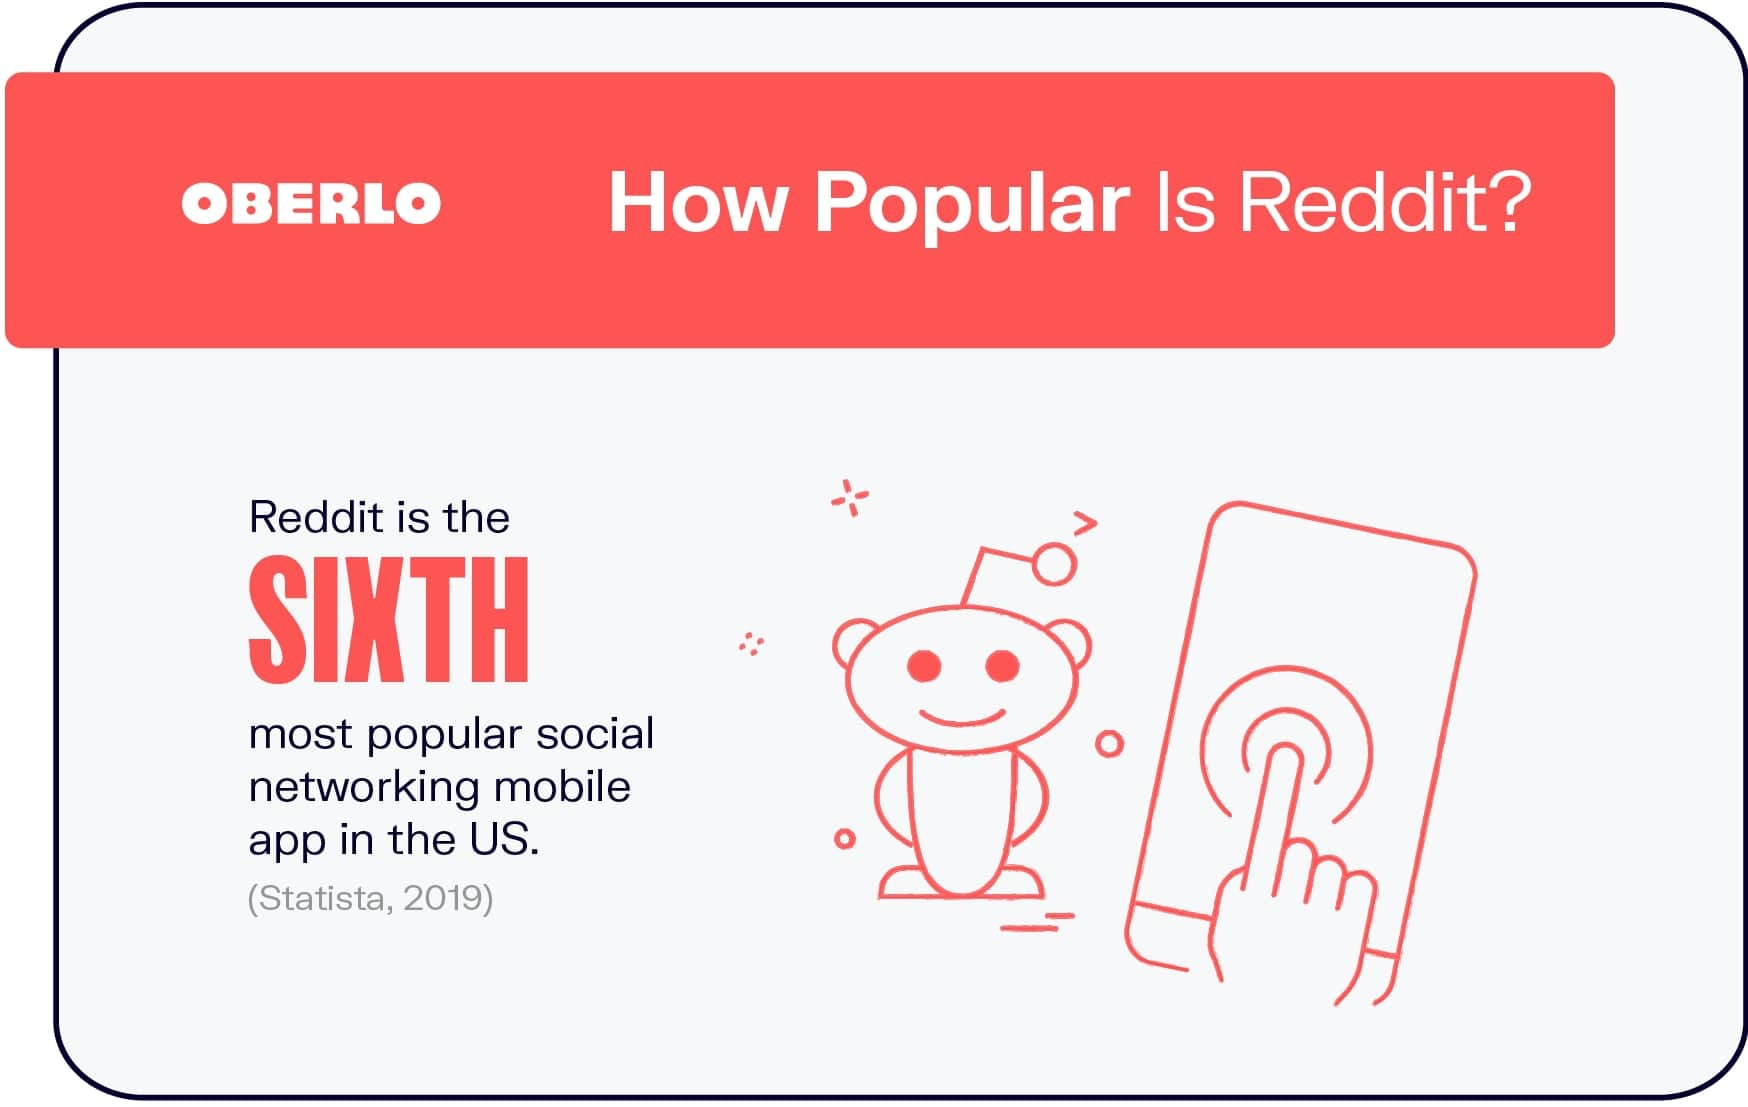 How Popular Is Reddit?